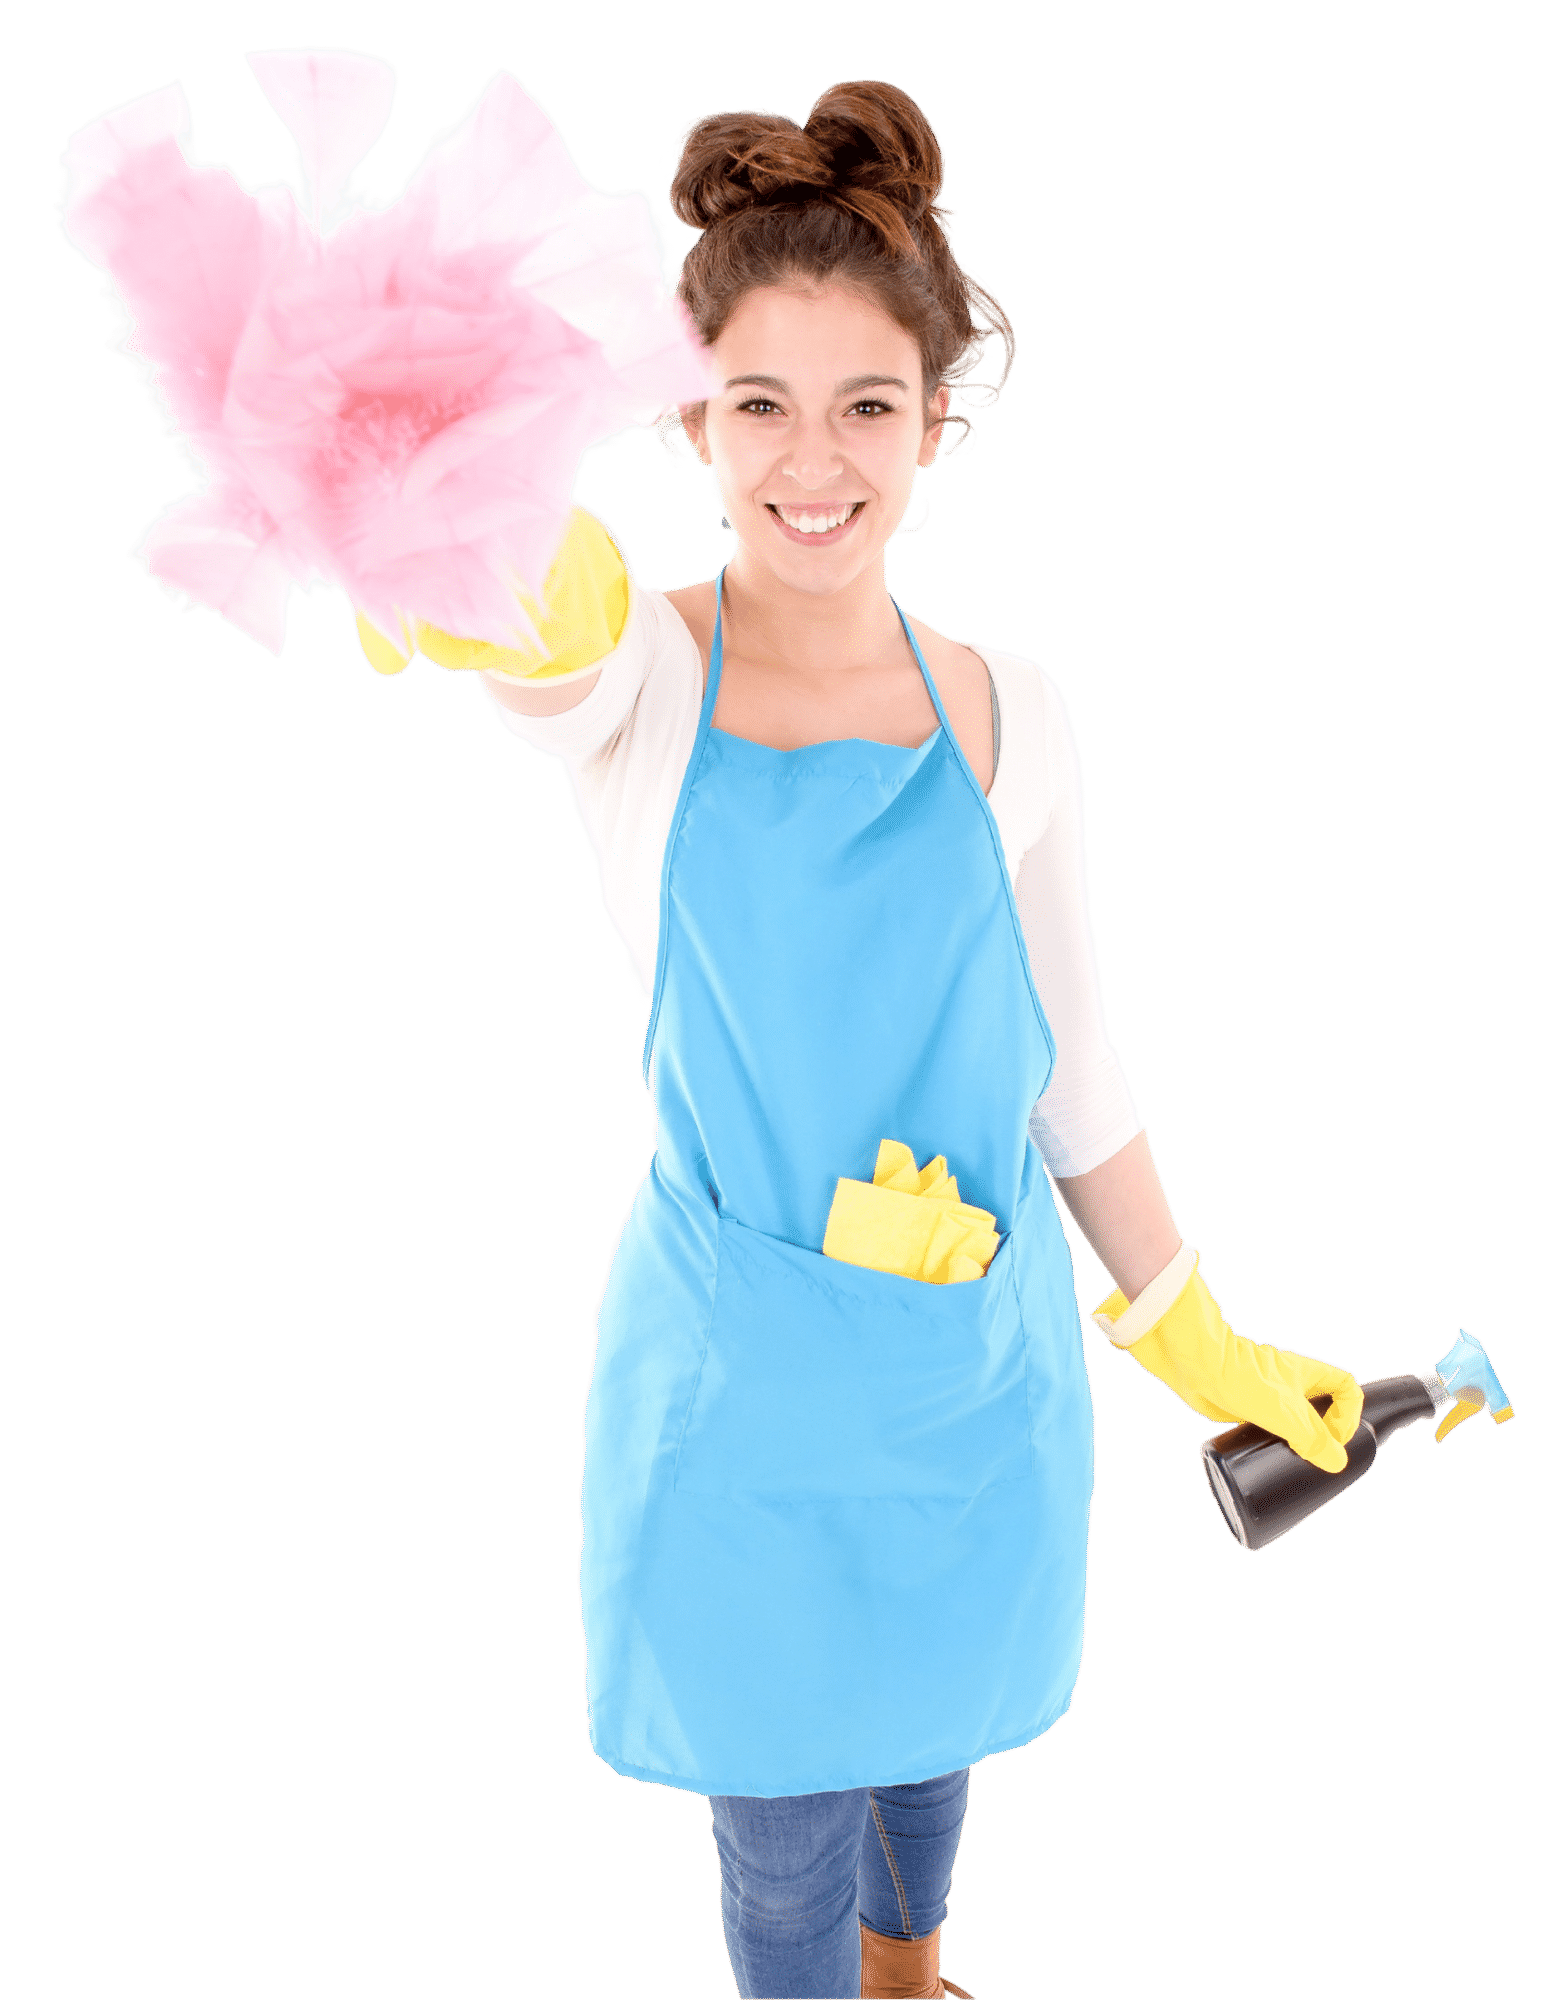 cheap house cleaning services clean home good job